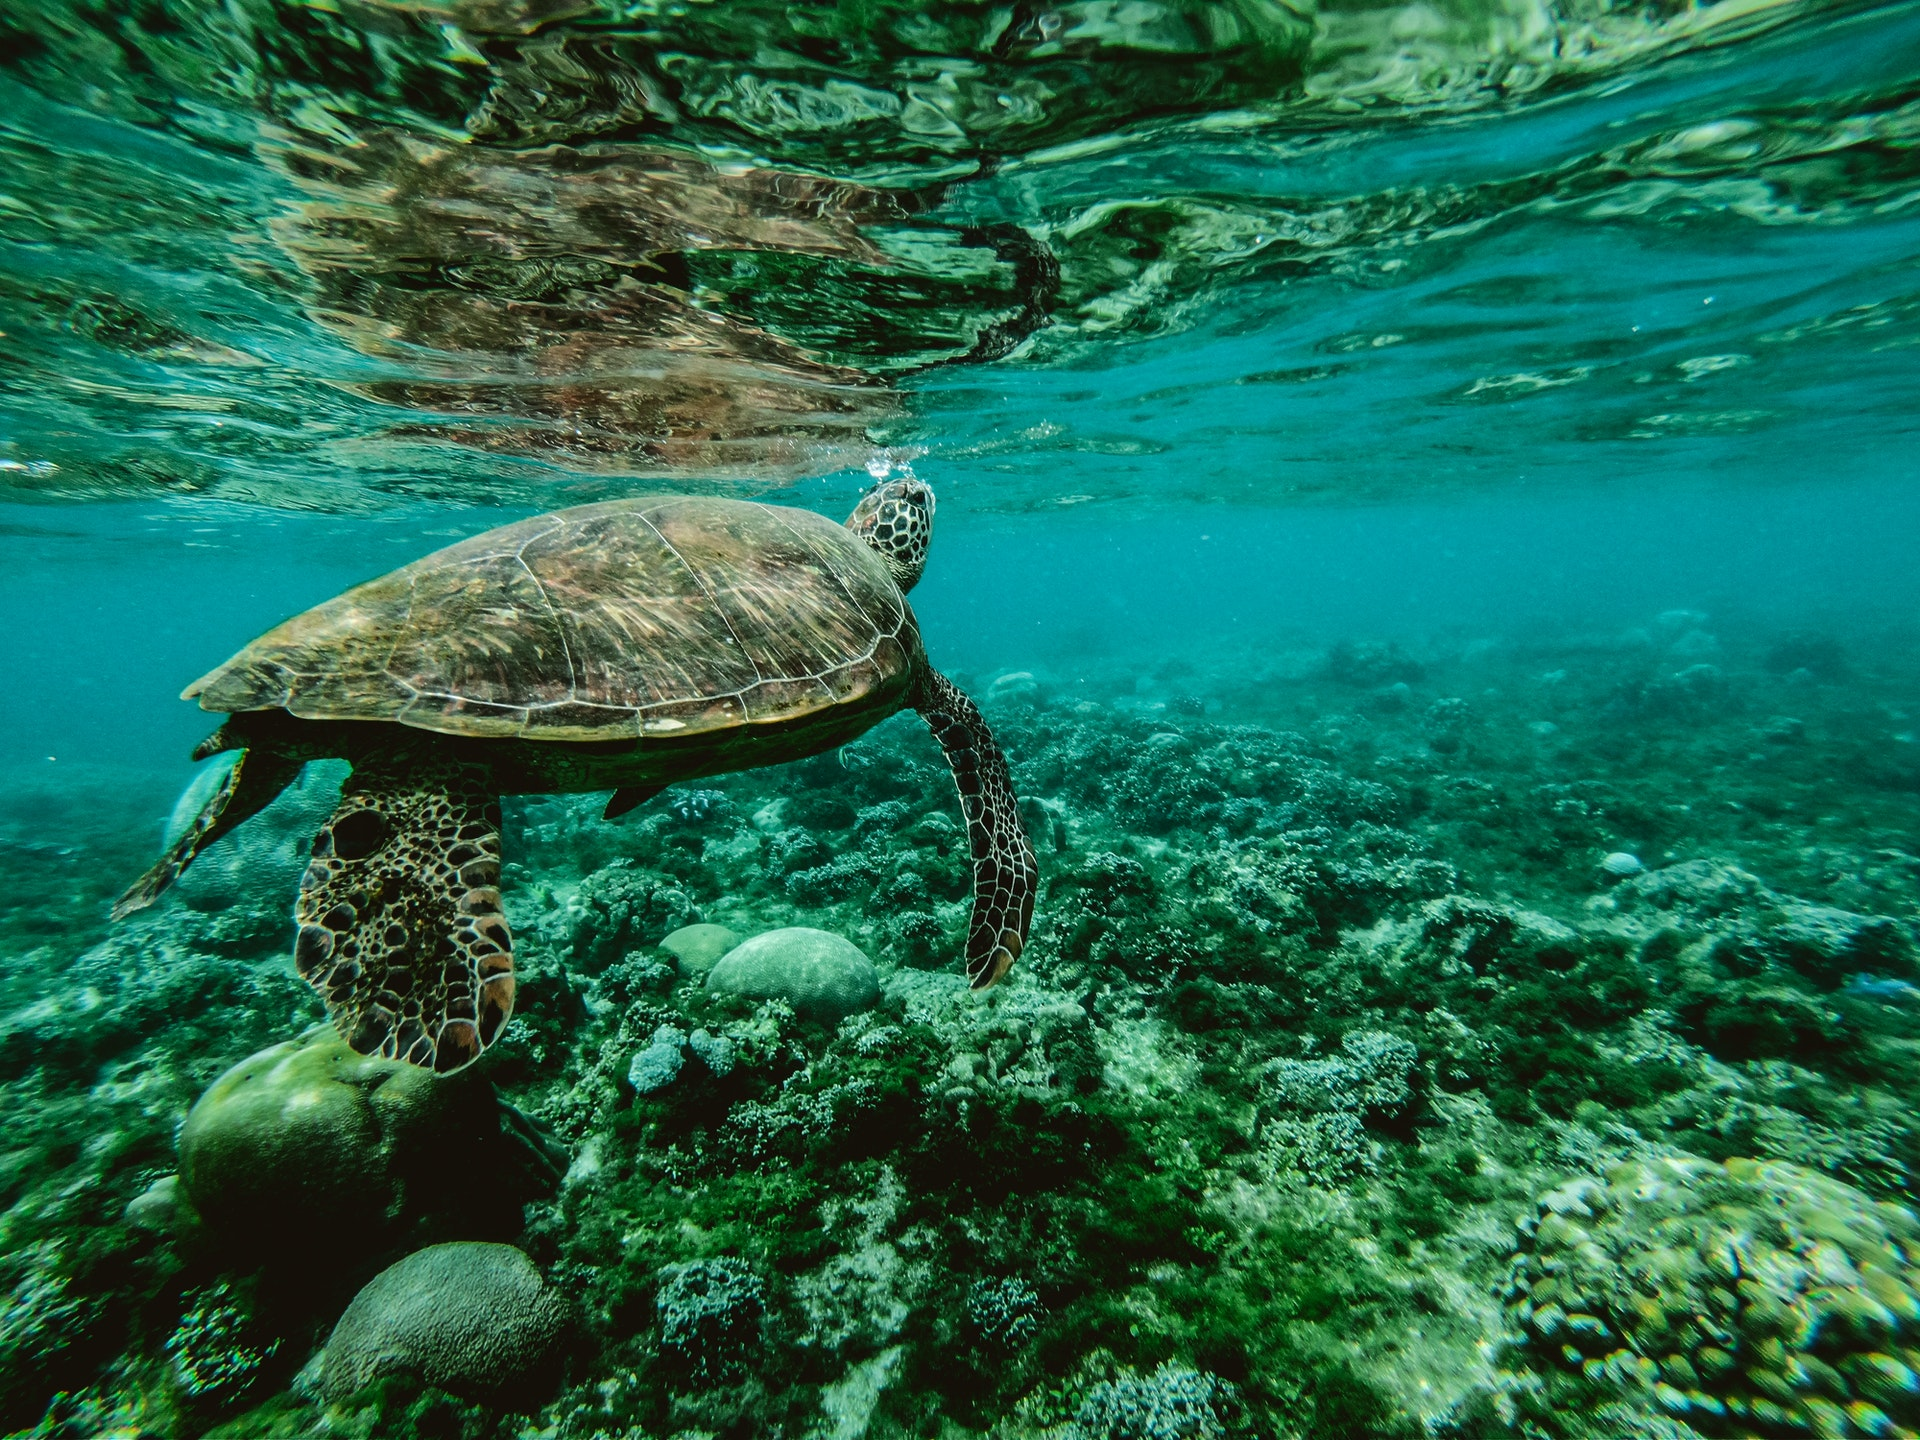 Coral Reefs: Canaries in the Coal Mine for Climate Change